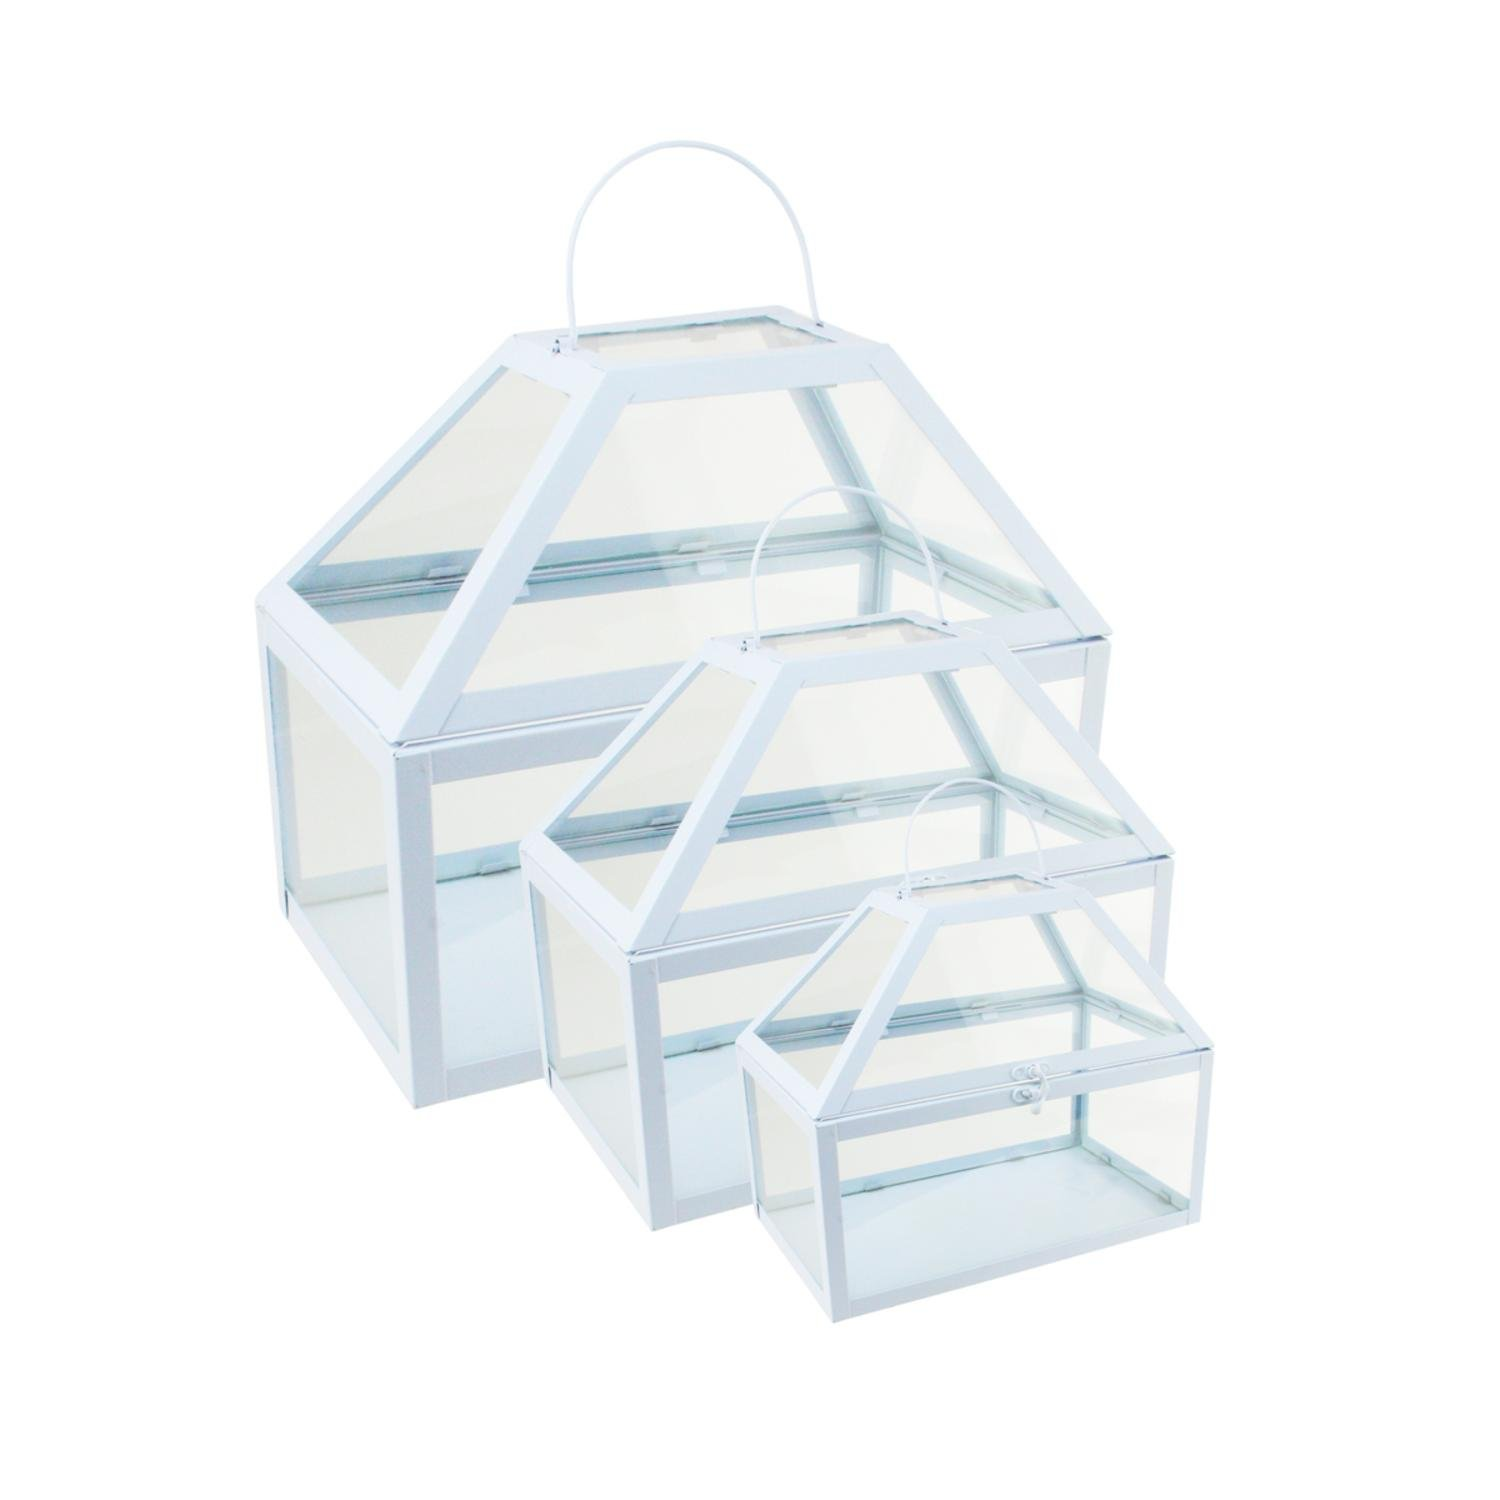 Northlight Set of 3 Light Powder Blue Metal and Glass Paneled Nesting Outdoor Greenhouse Terrariums 8.25''-12''